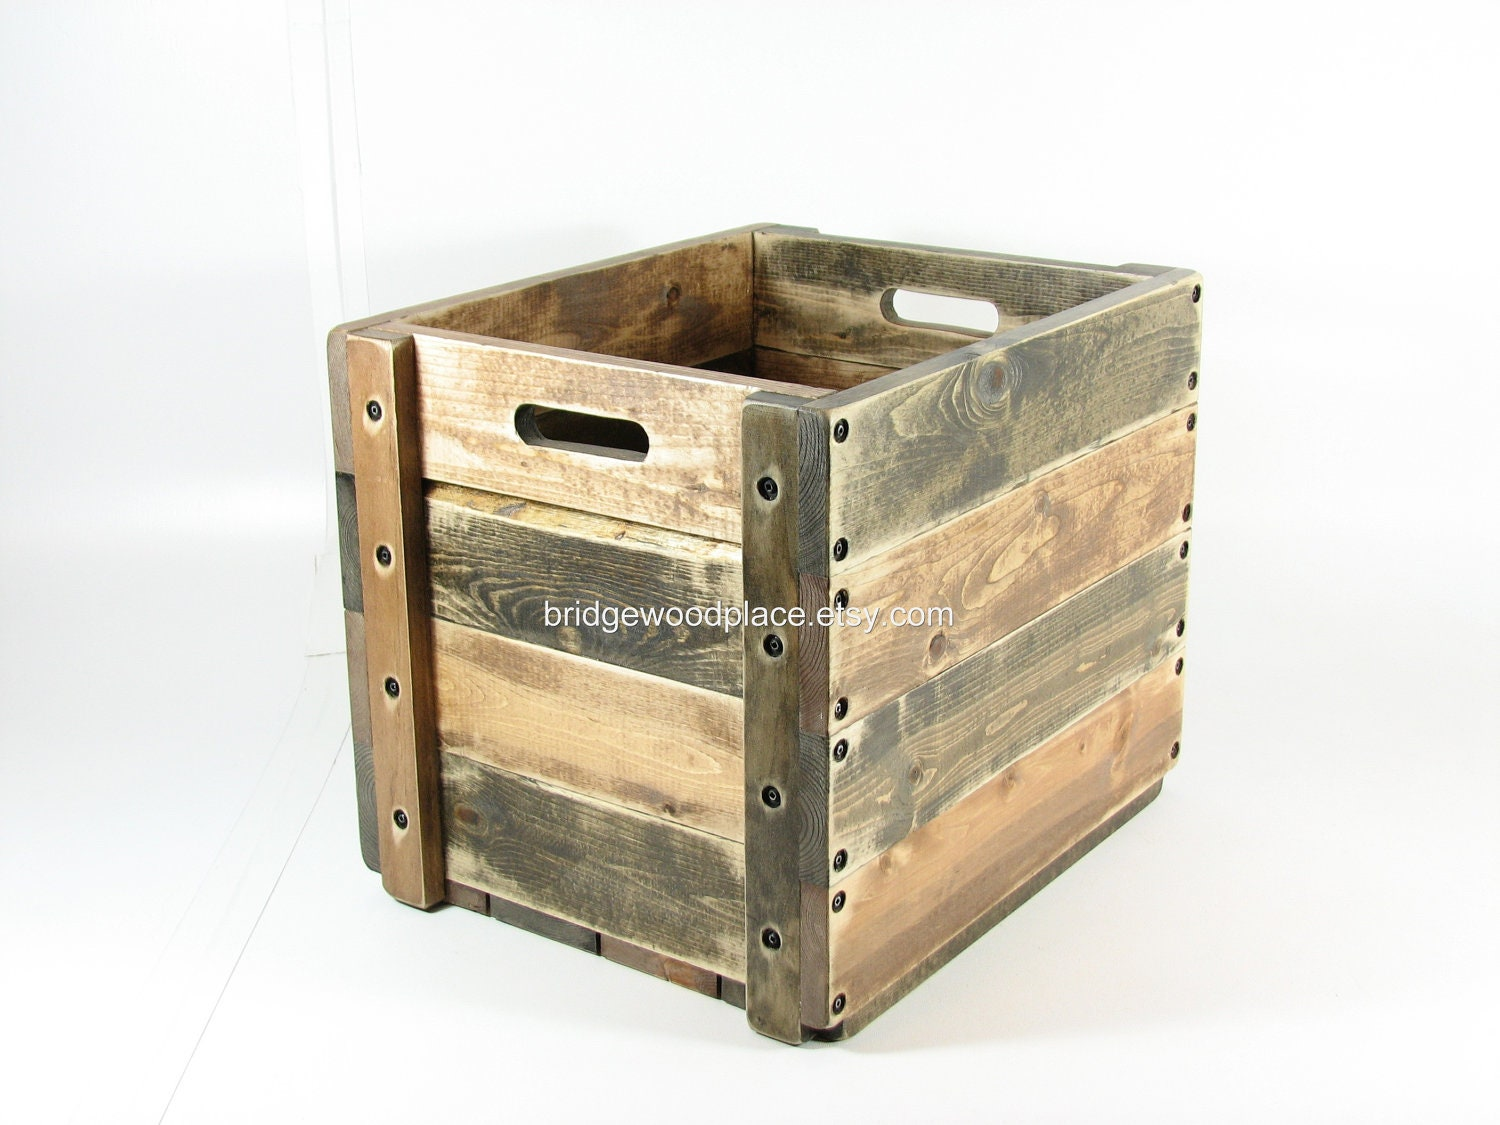 Wood Crate Wooden Box Table Furniture Storage By Bridgewoodplace